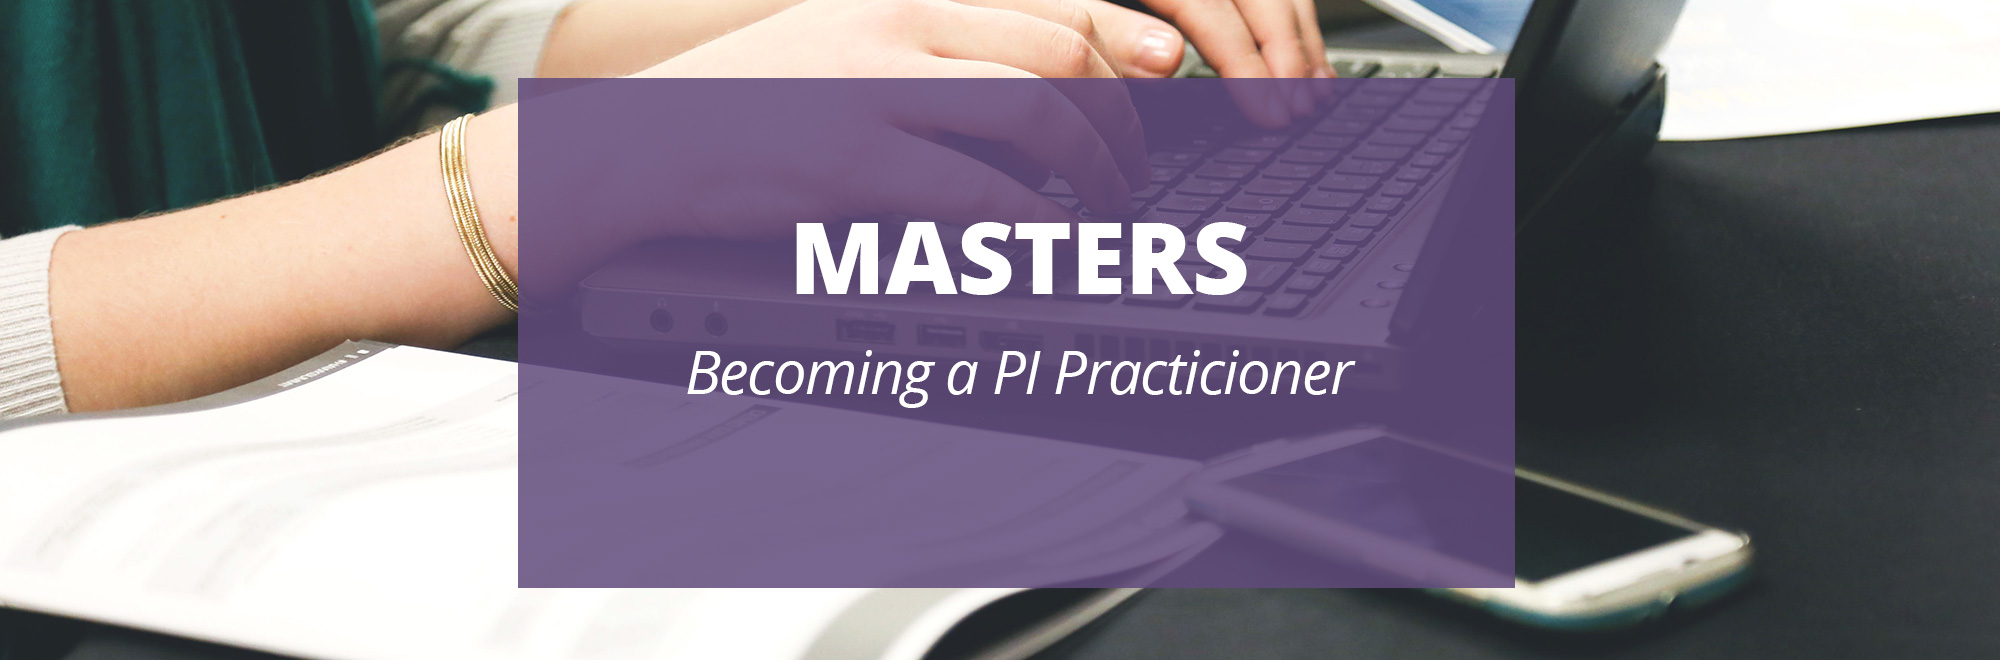 Becoming a PI Practitioner